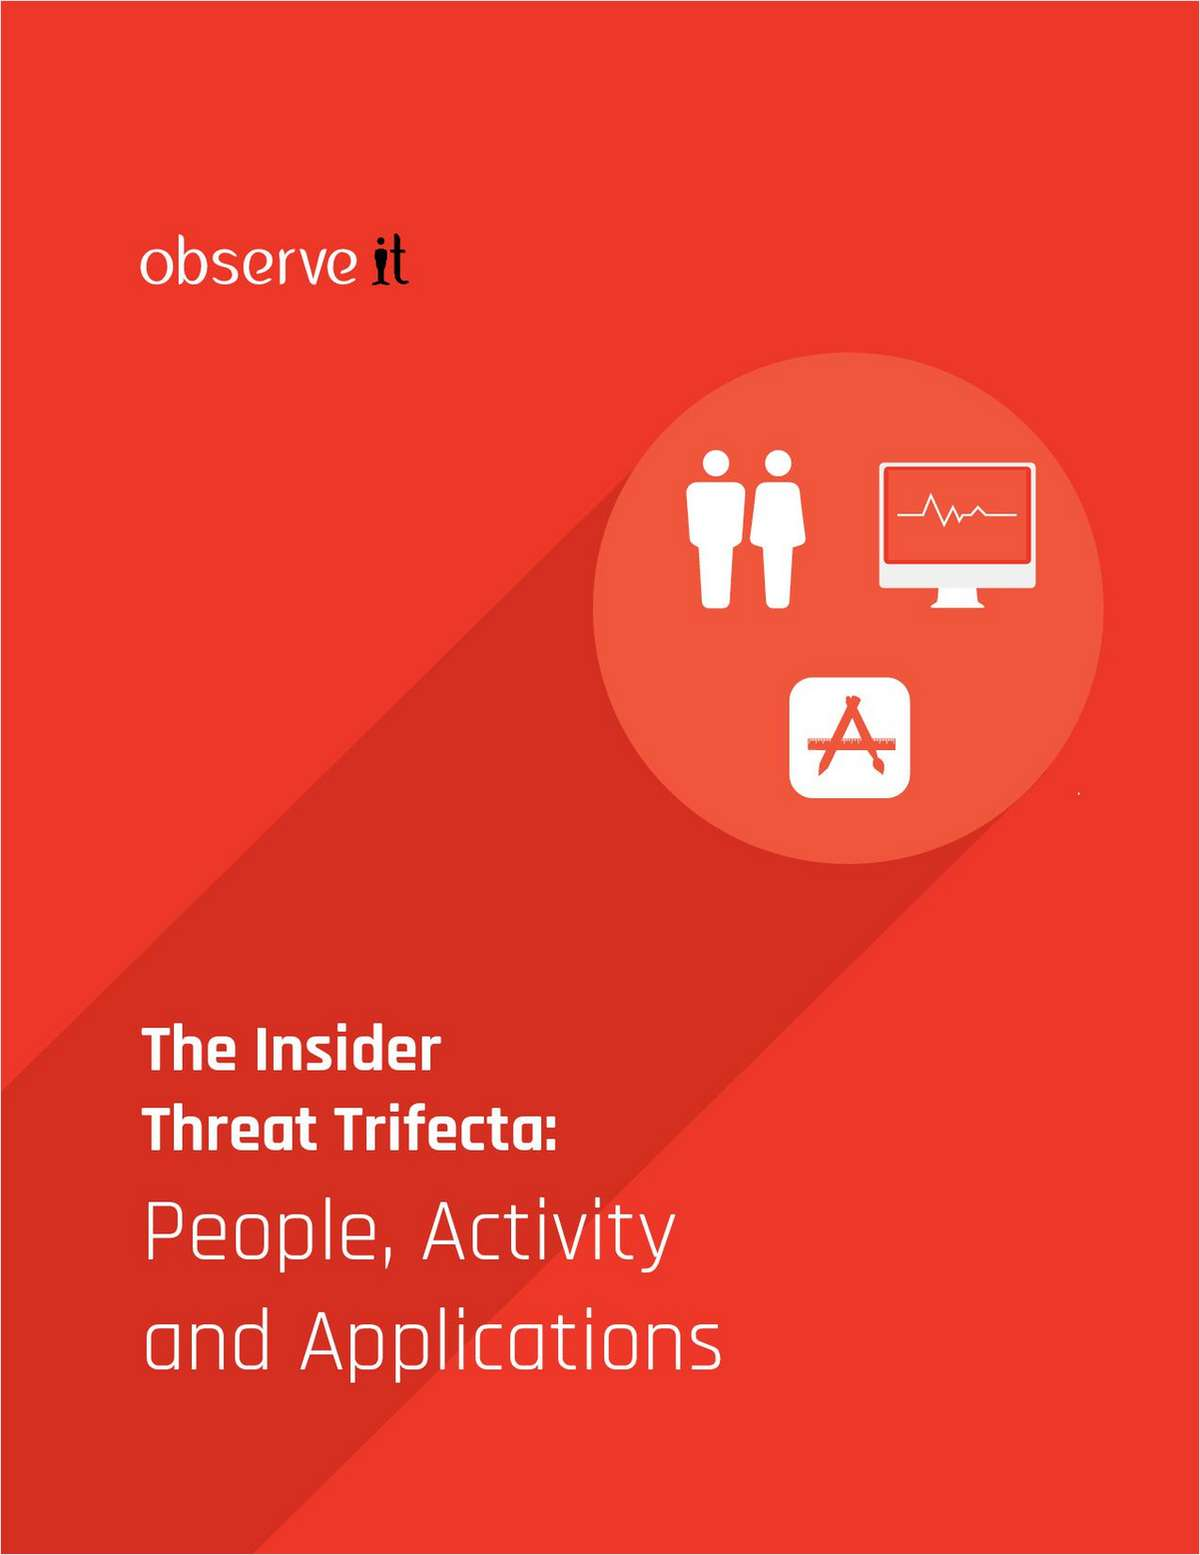 The Insider Threat Trifecta: People, Applications and Activity